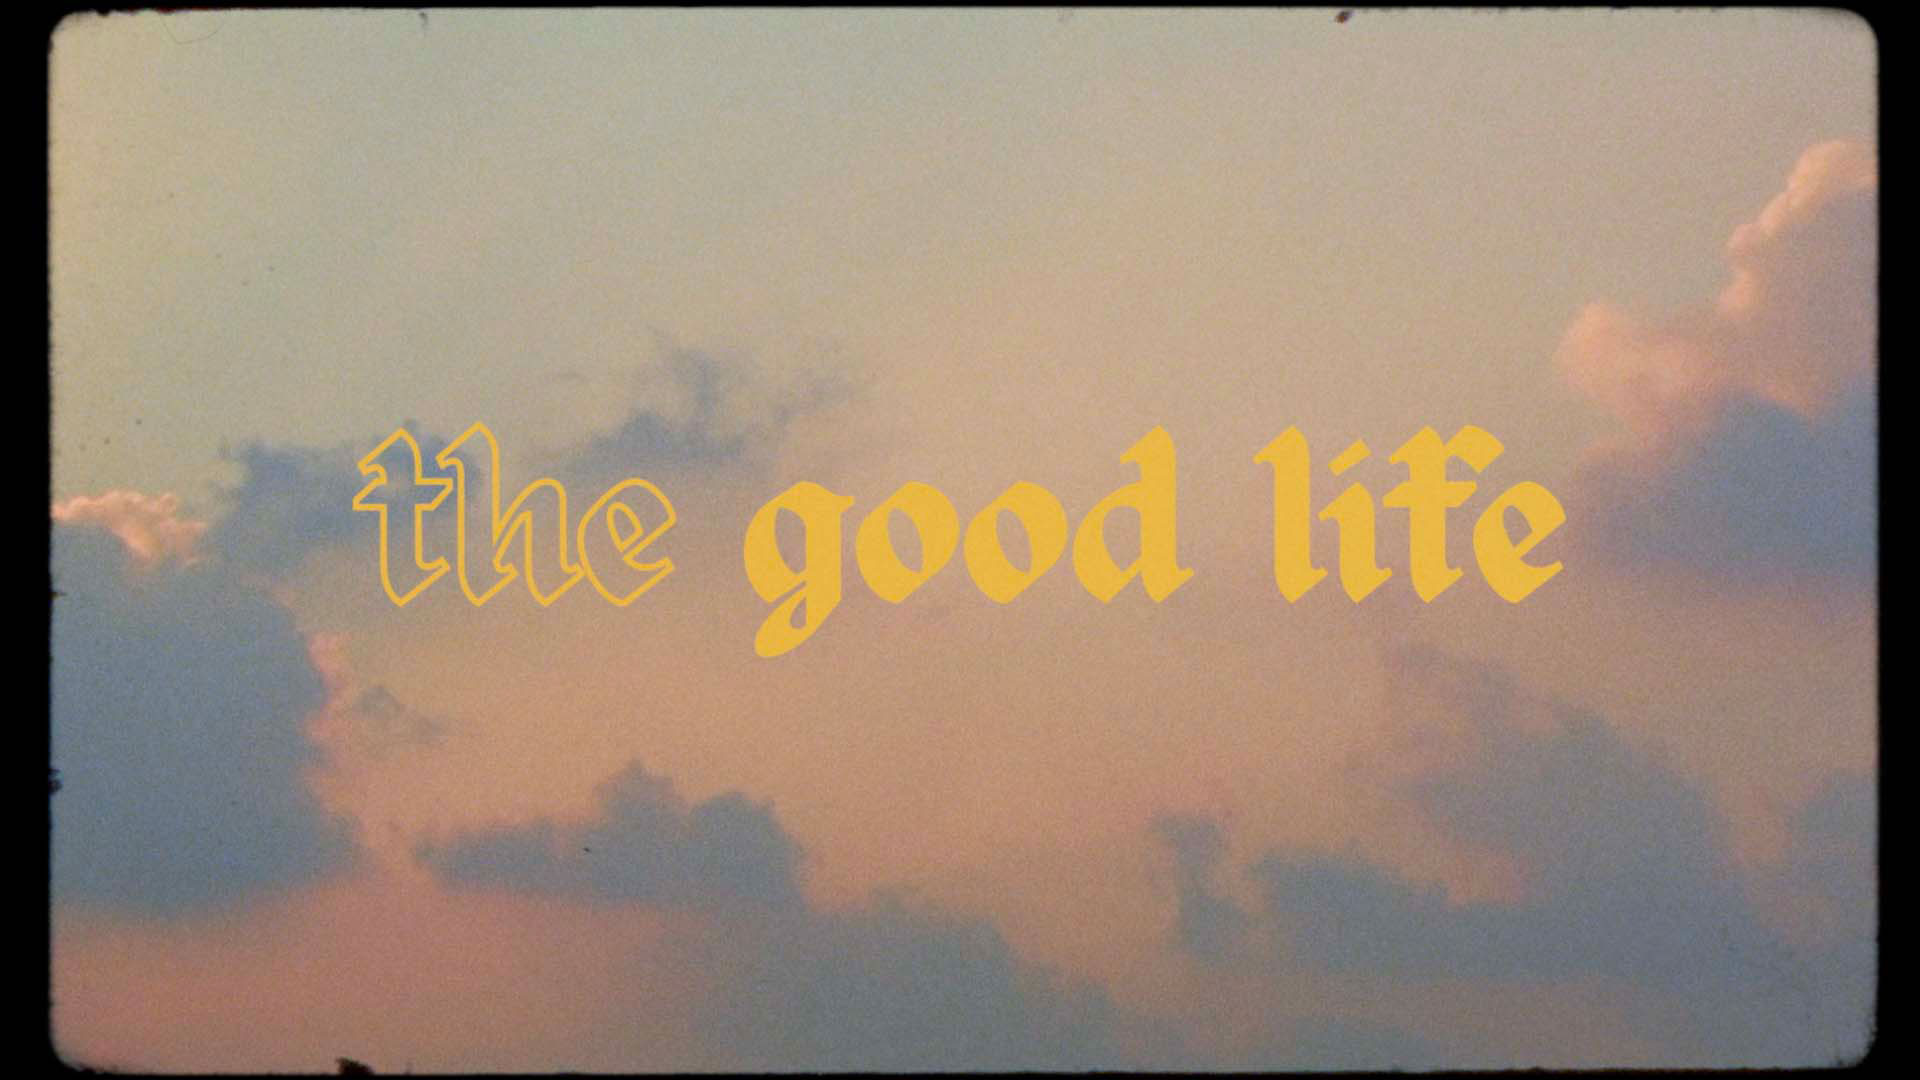 Series: The Good Life